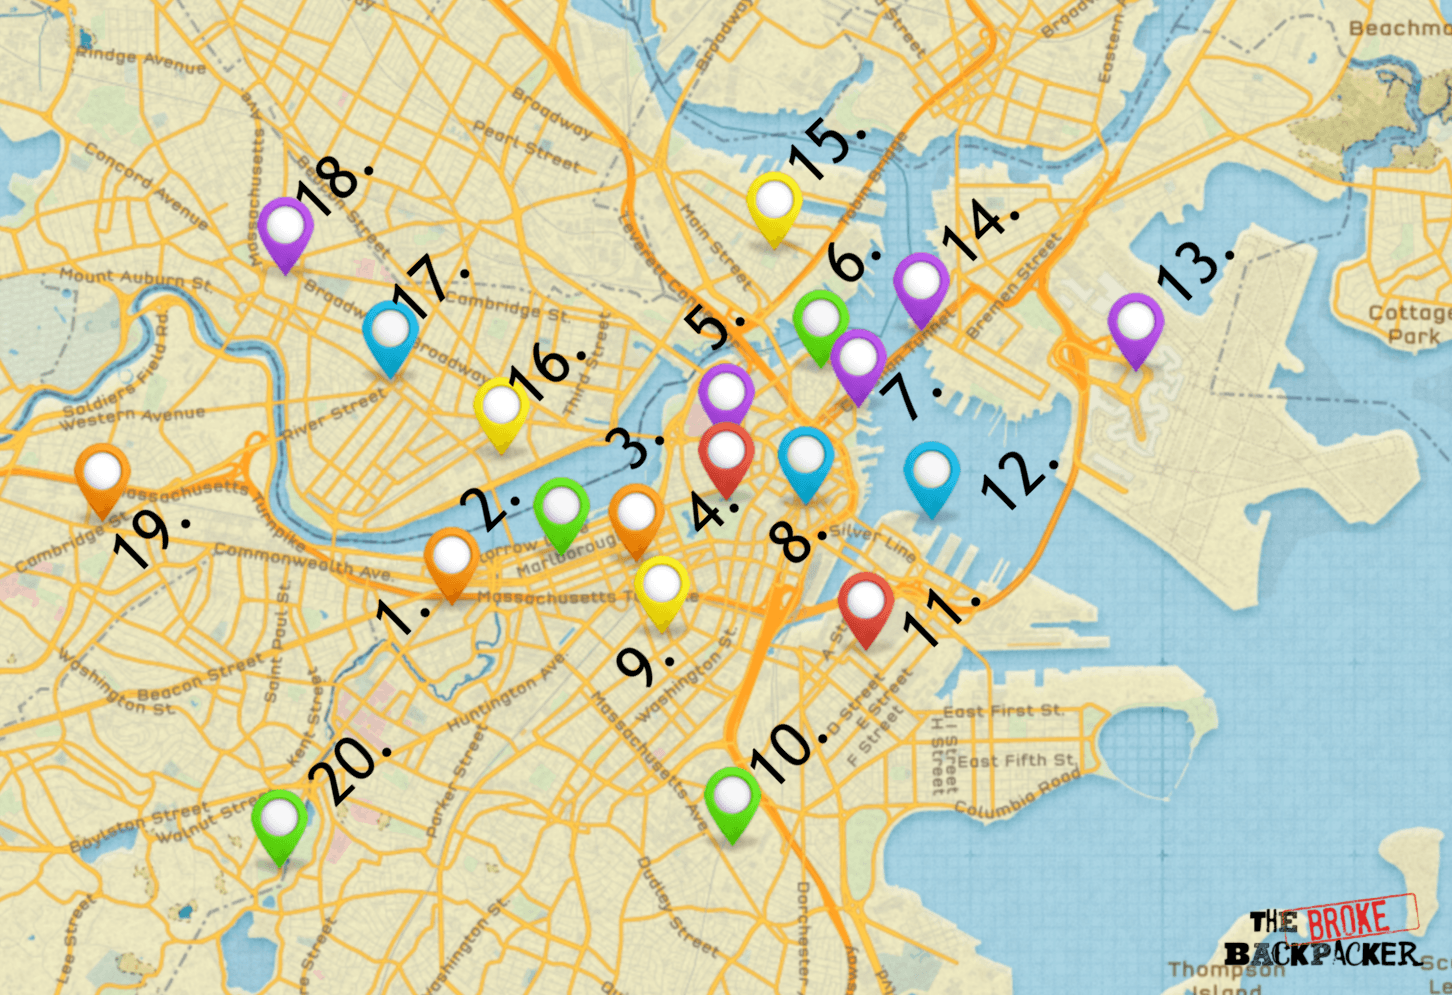 map of boston travel guide